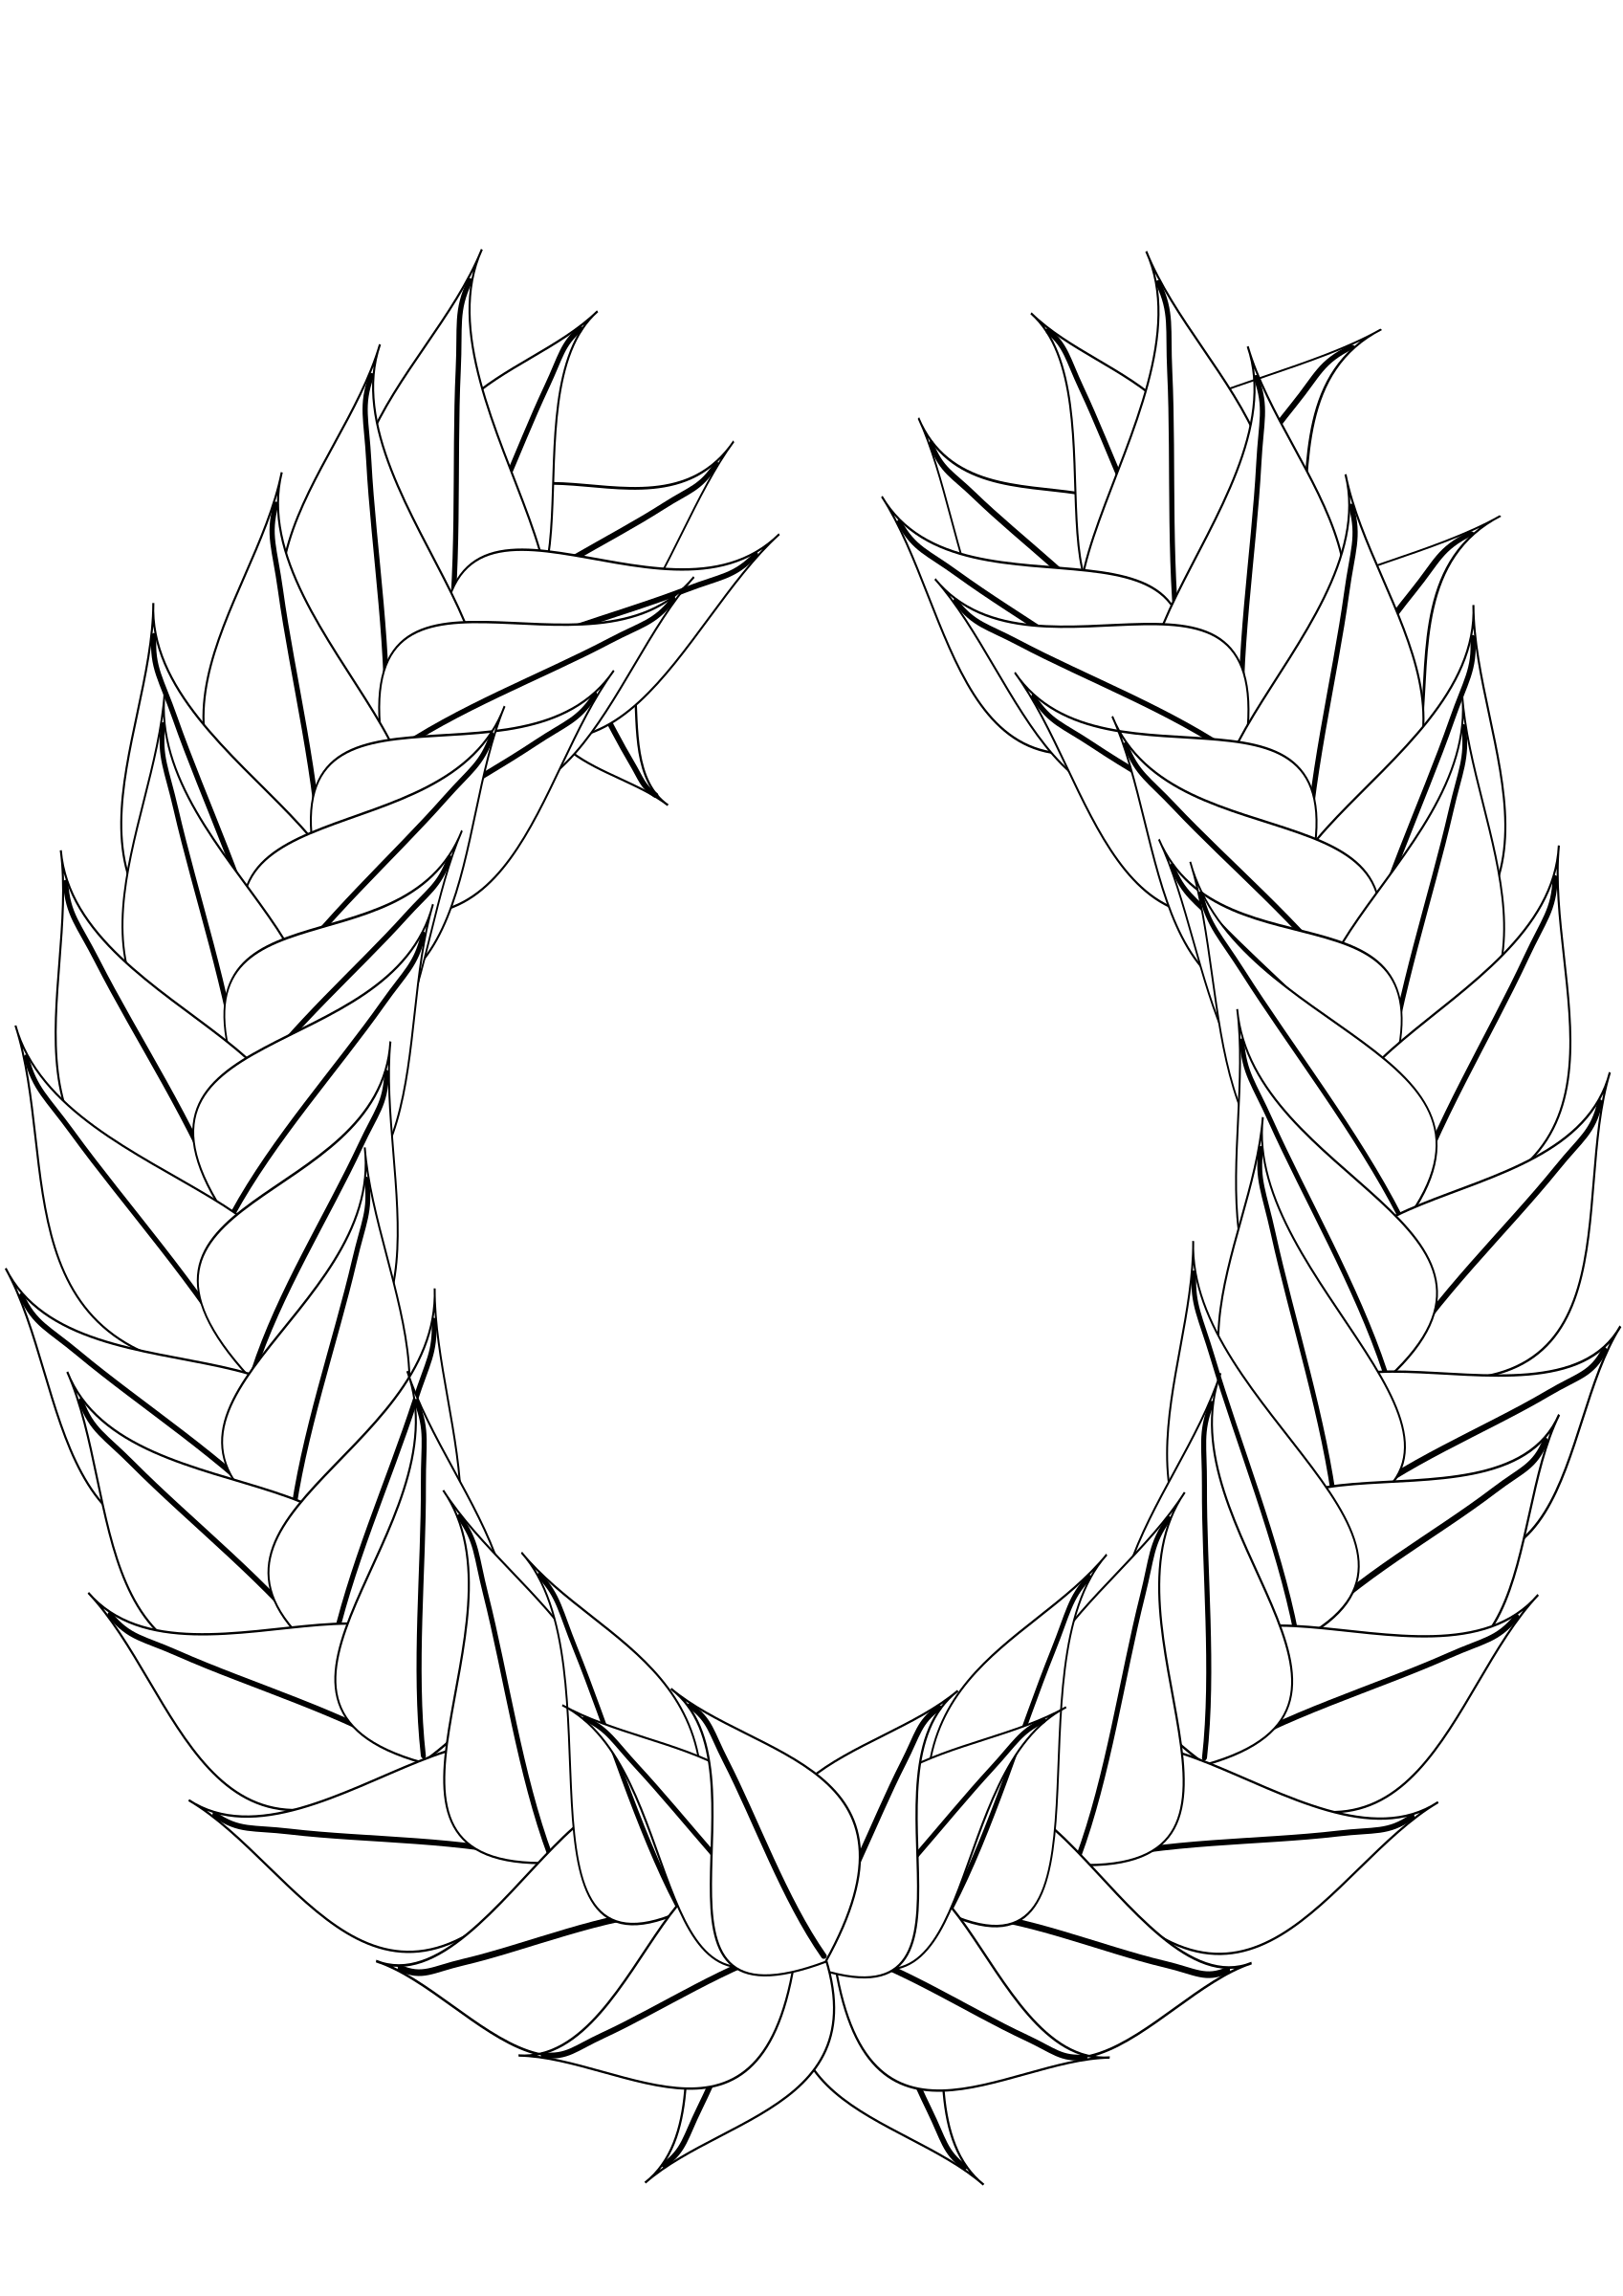 Laurel Wreath blank outline by Caelus5